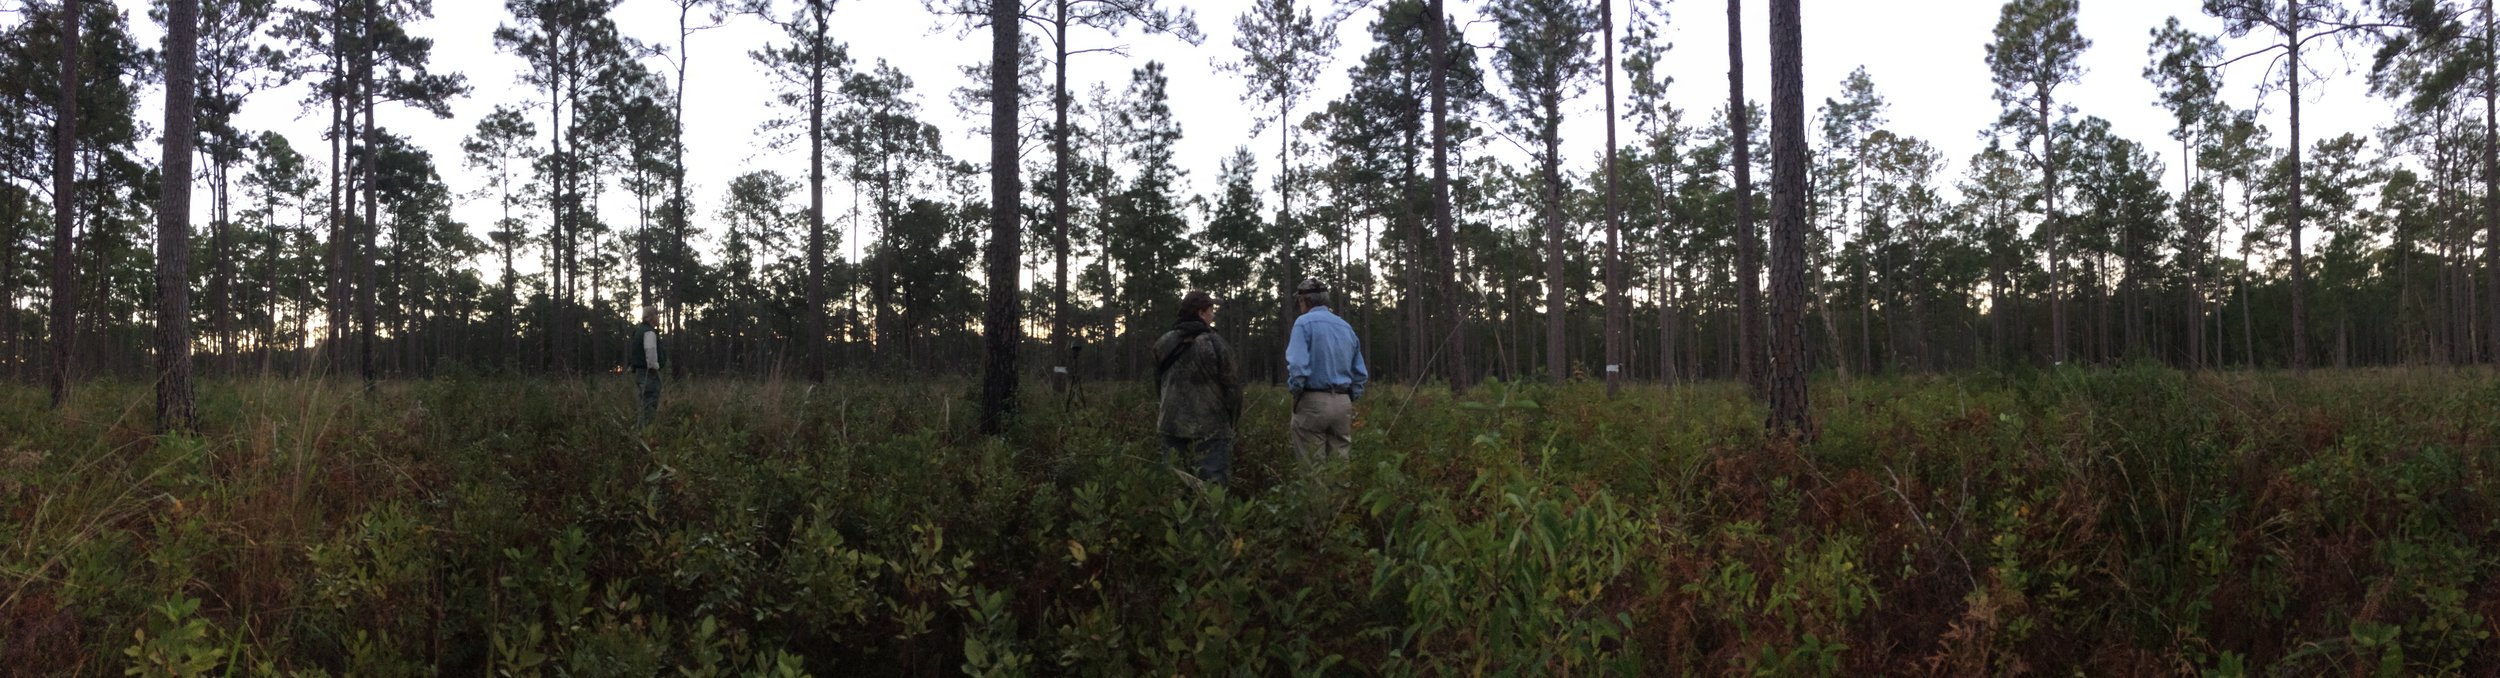 The widely spaced longleaf pines and fire-controlled understory on this section of Donnelley WMA is ideal habitat for RCWs. That's no accident, SCDNR staff spent years carefully preparing this area for the reintroduction of these once-common,birds, now on the endangered species list.